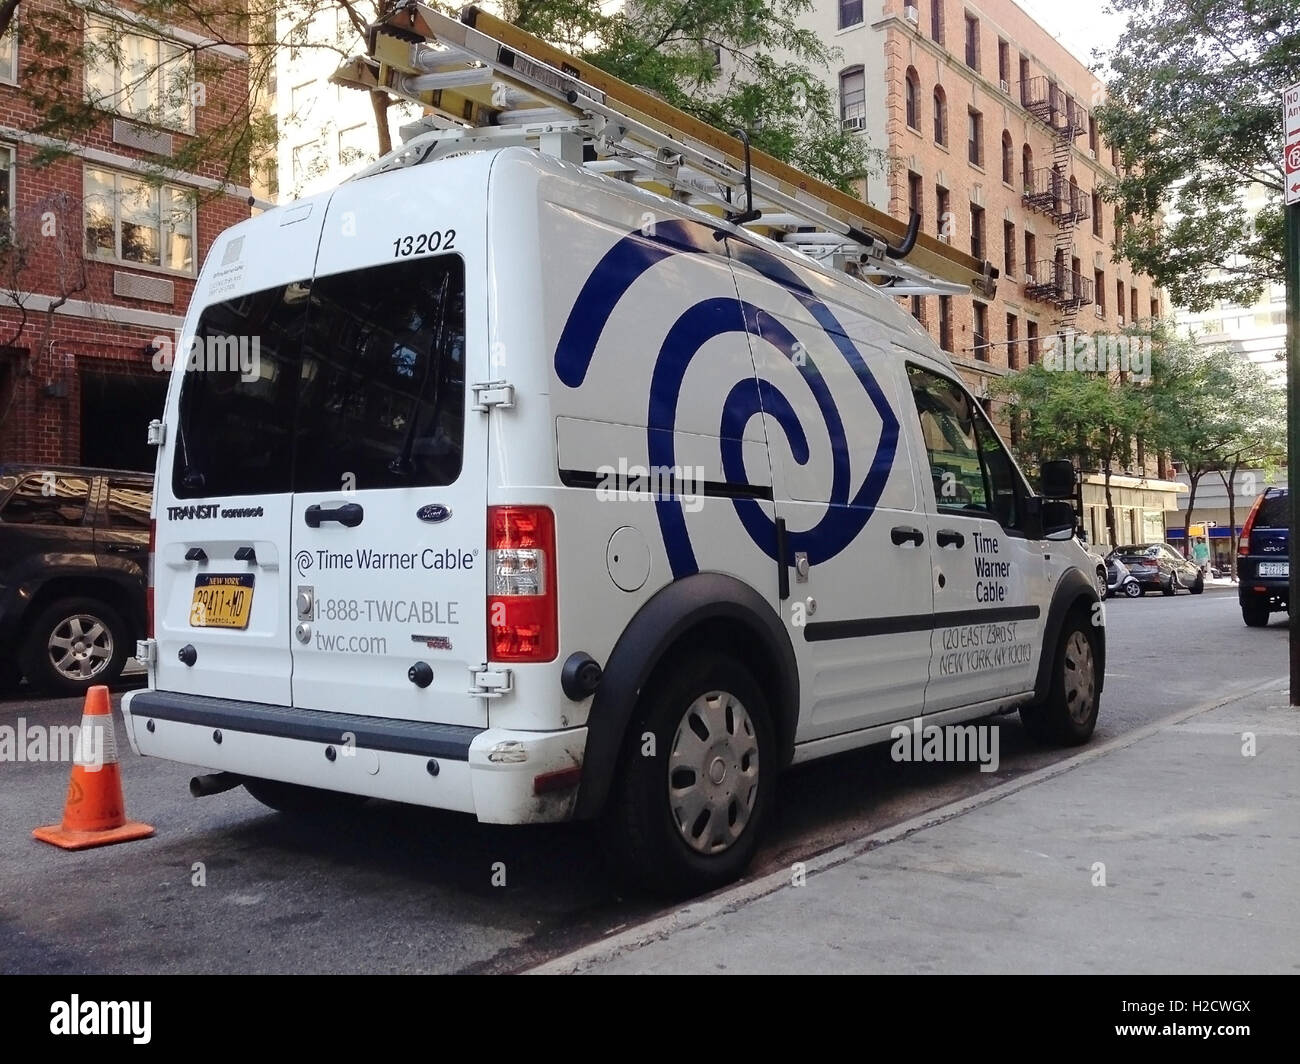 Twctime Warner Cable 888 Twcable: A Time Warner Cable van in the streets of Manhattan Stock Photo rh:alamy.com,Design